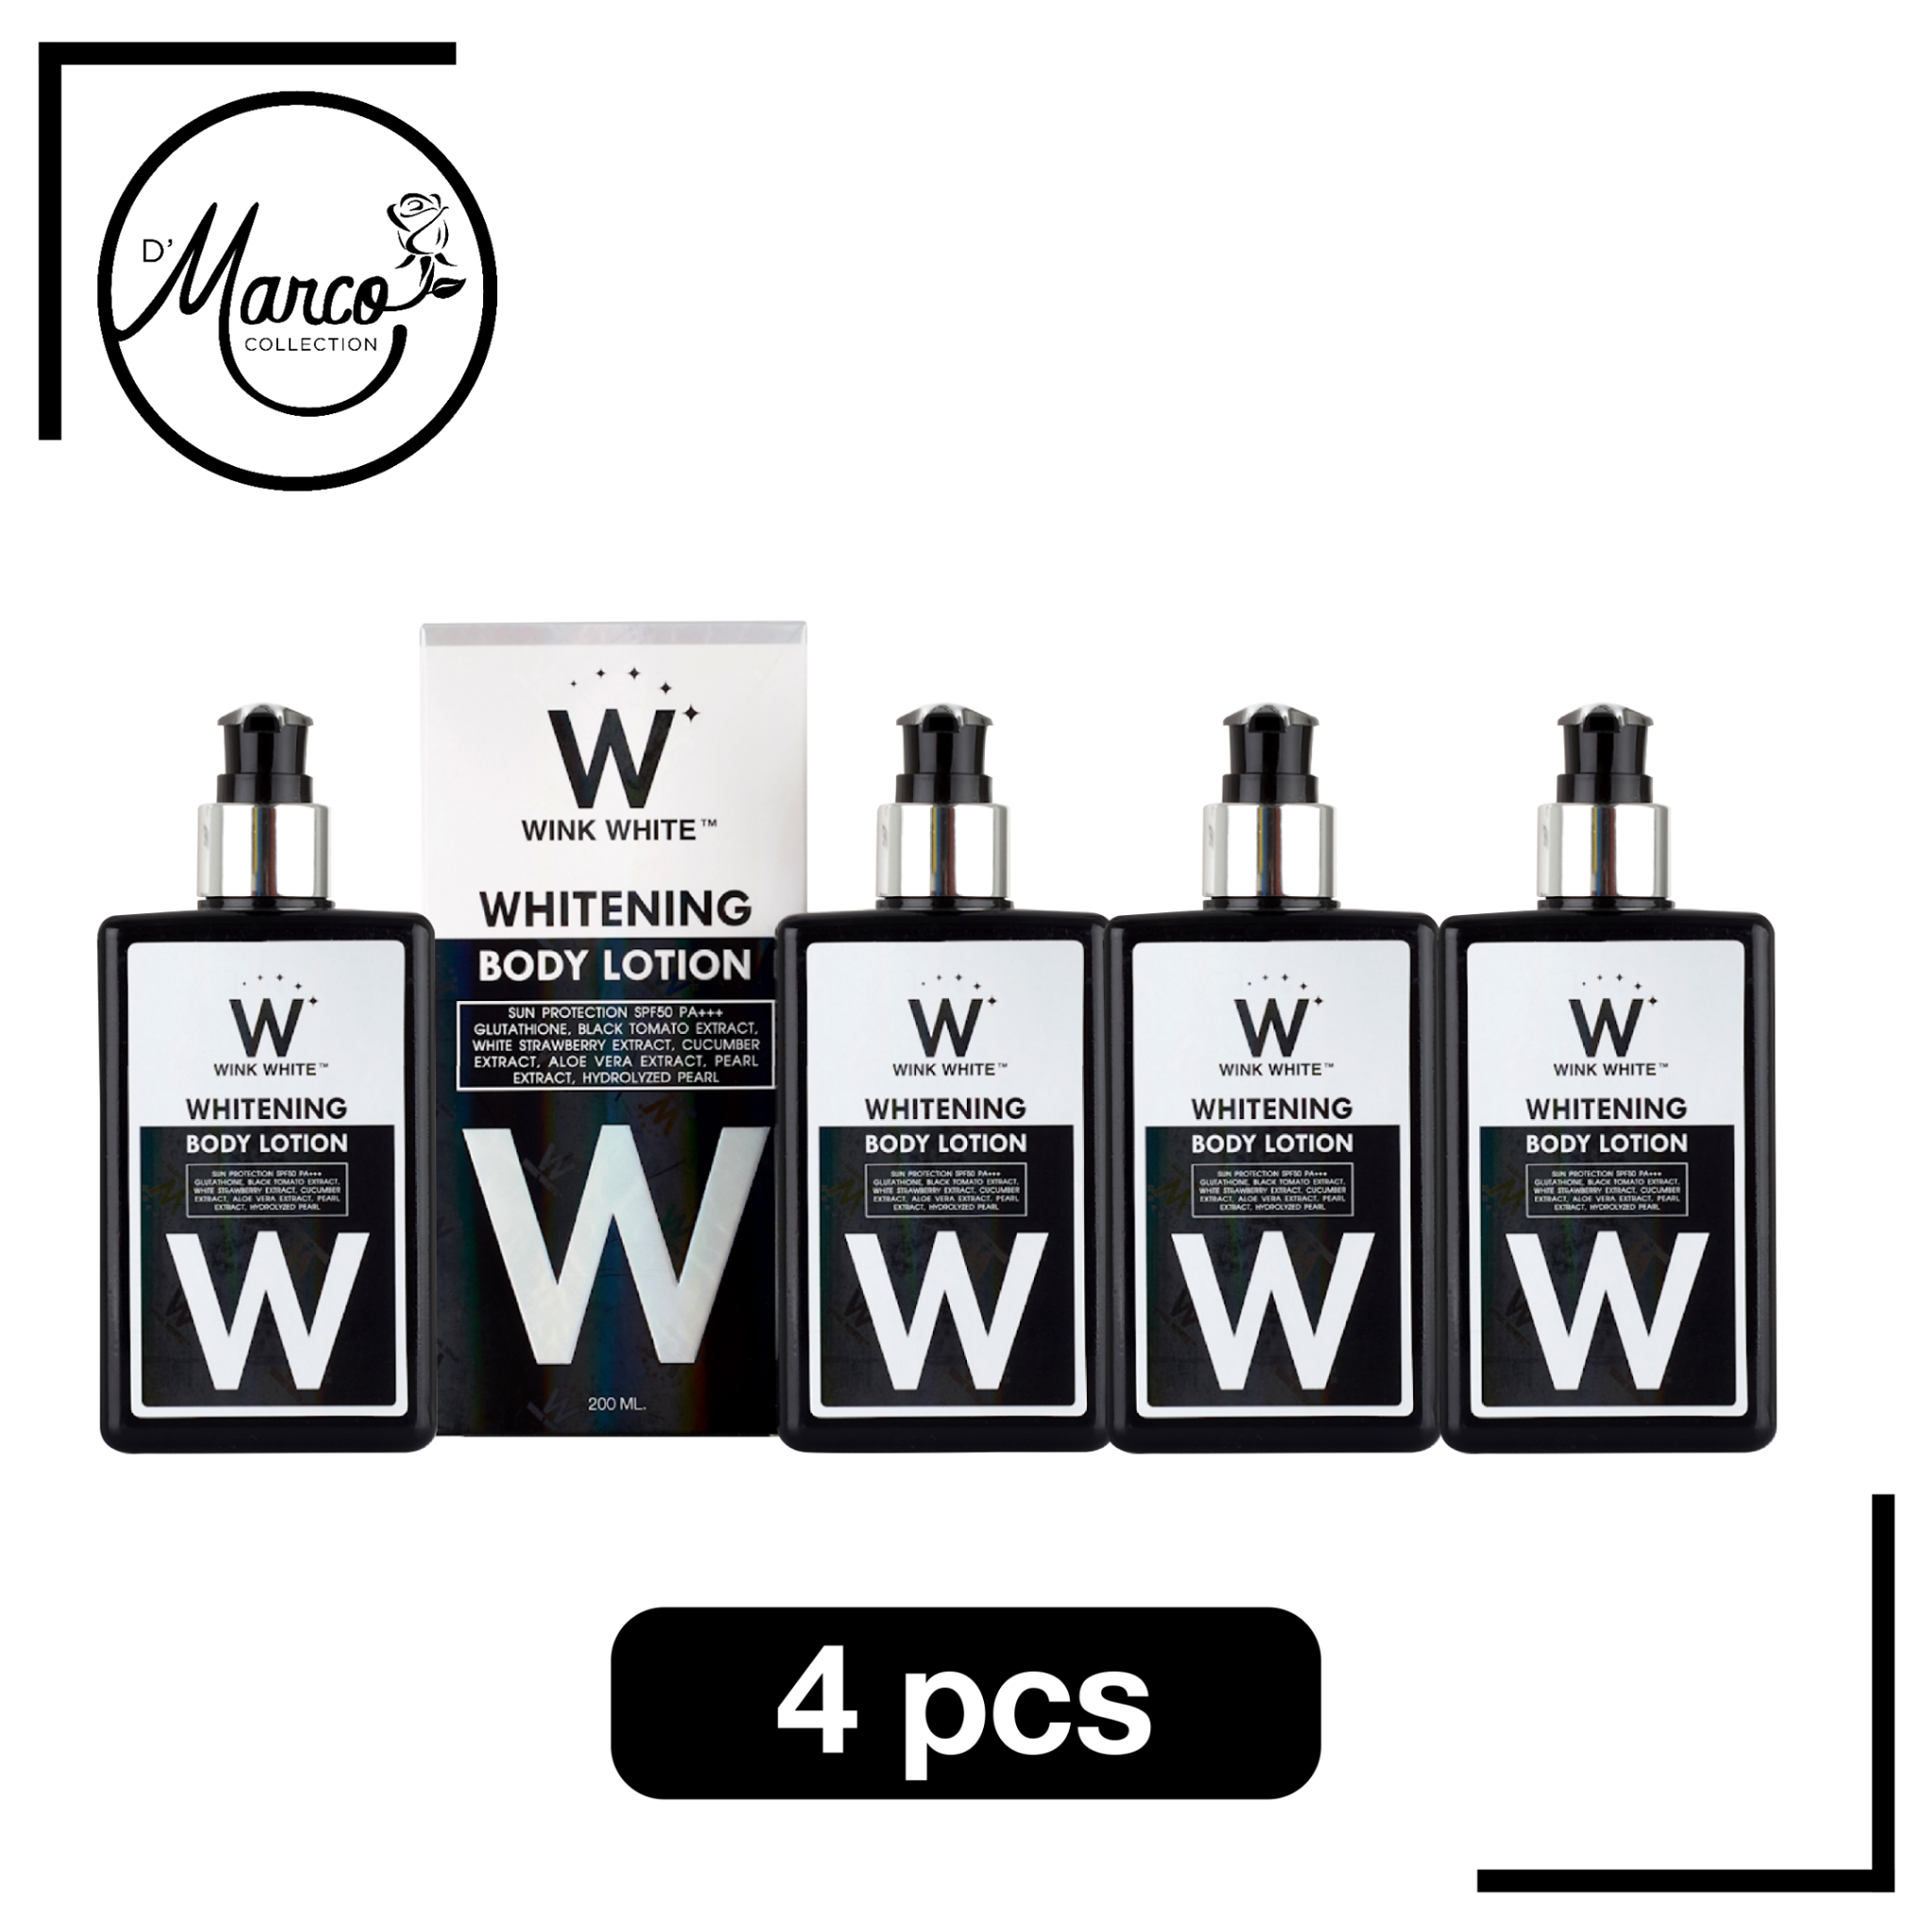 Whitening Body Lotion, 4 bottles